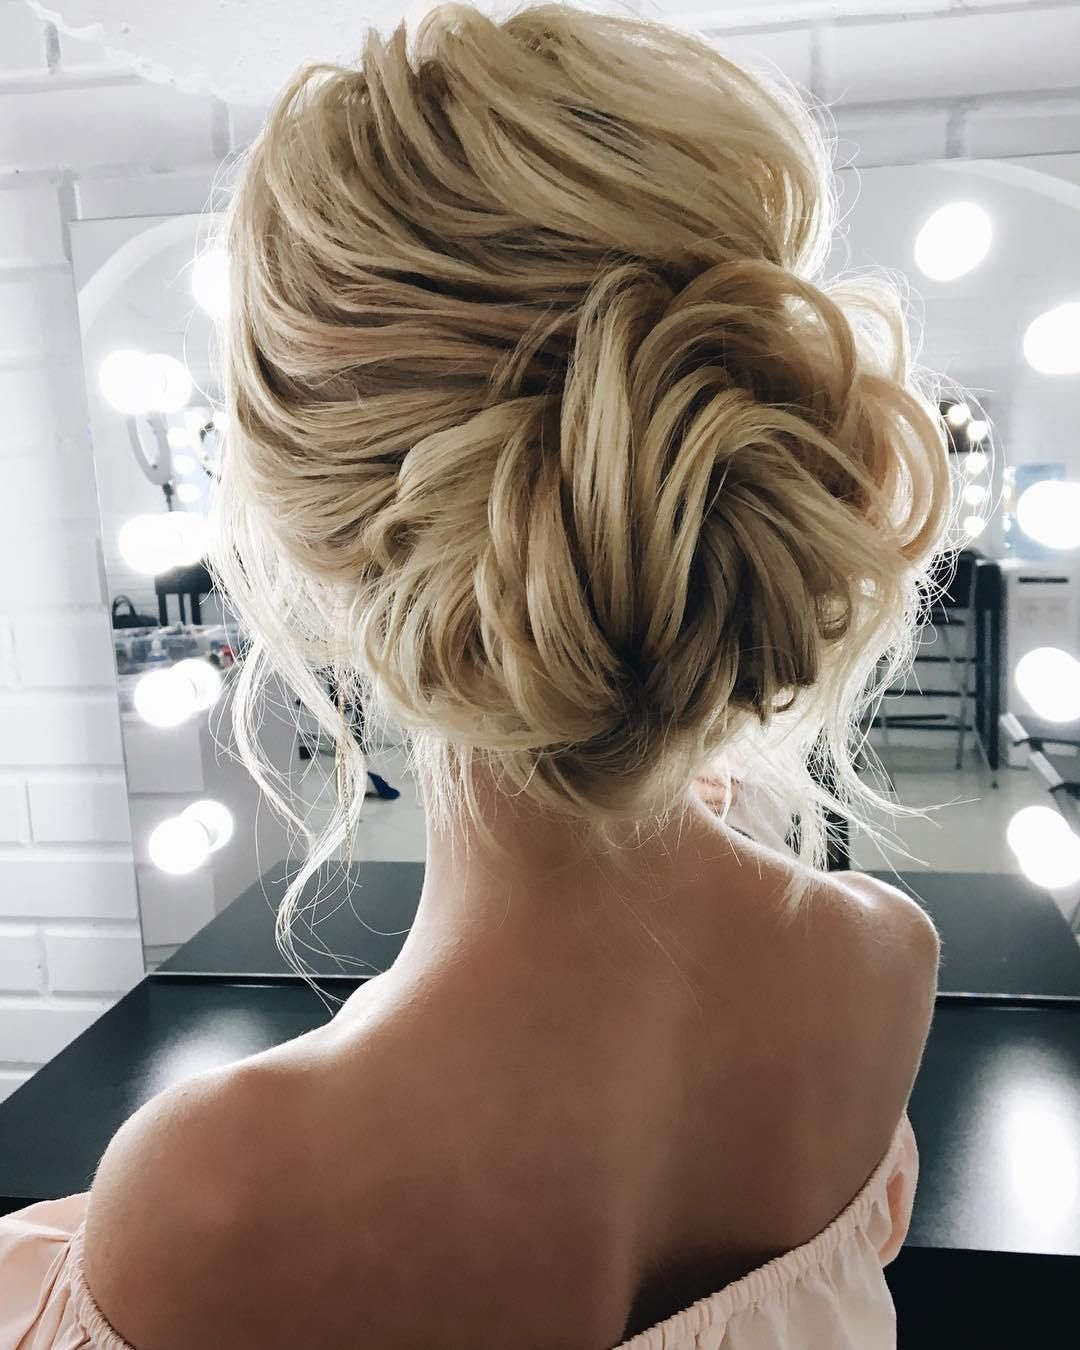 Fabulous textured updo hairstyle